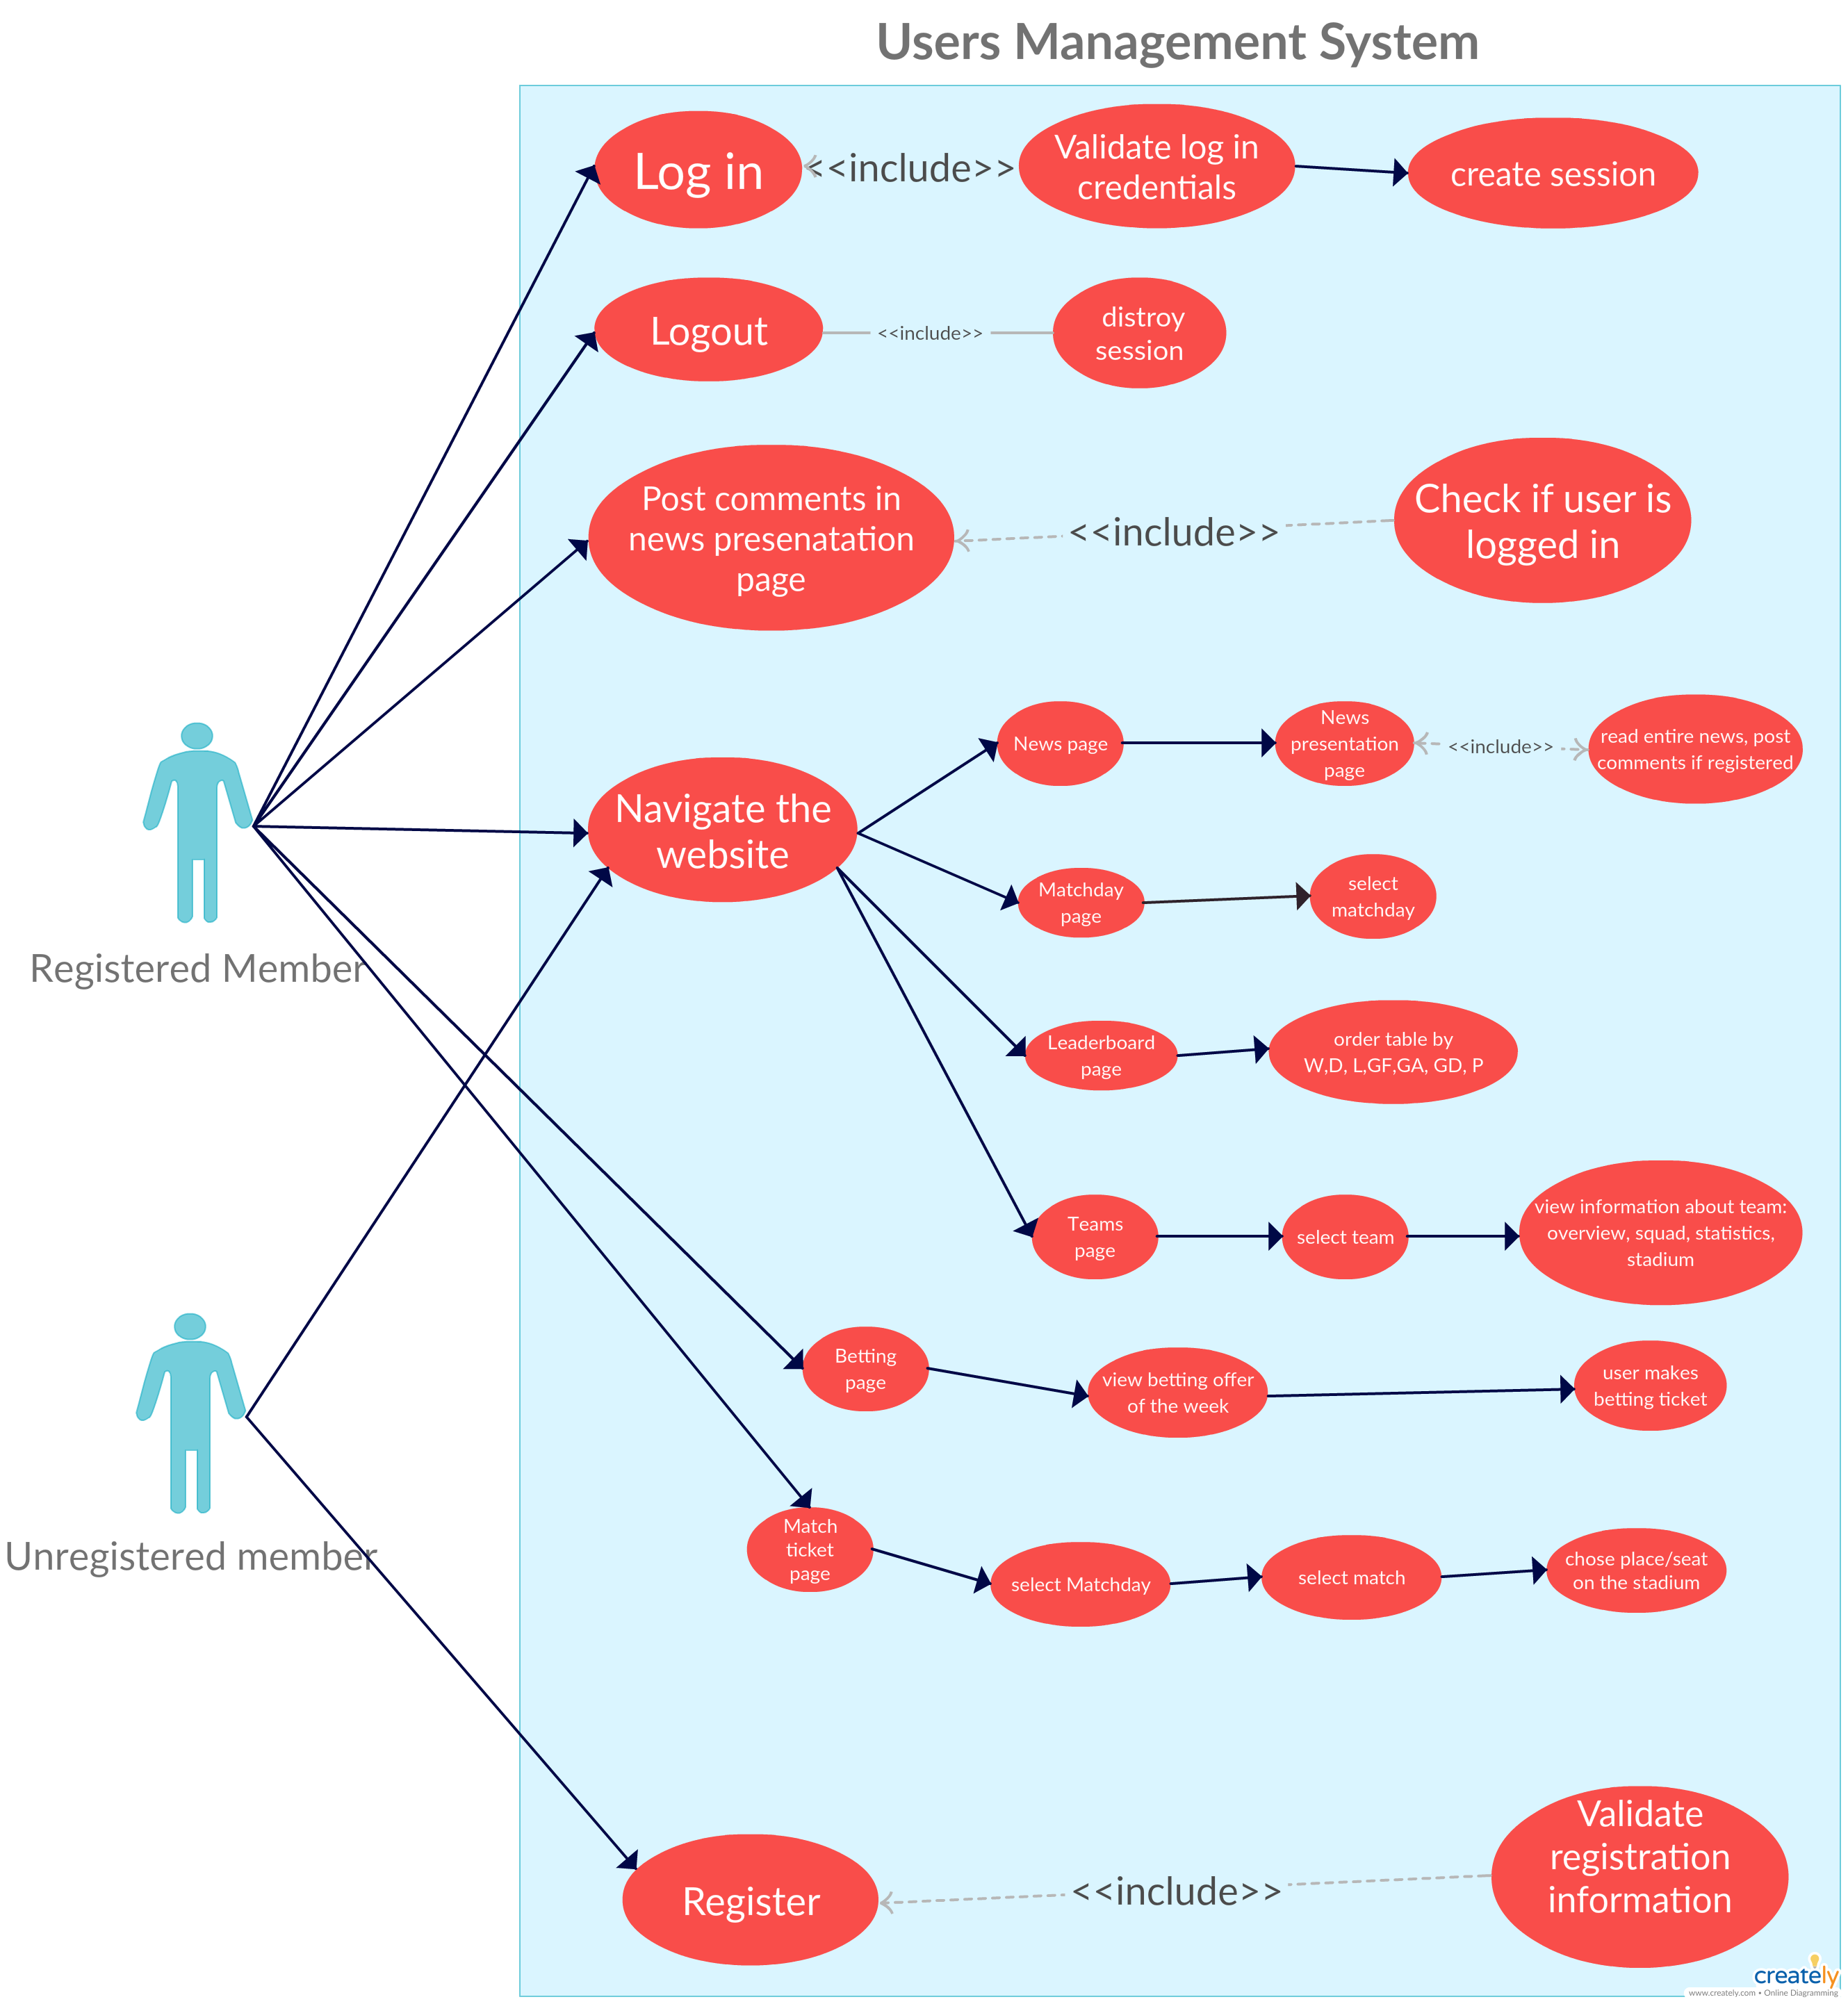 Use Case Diagram of Users Management System - This diagram ...